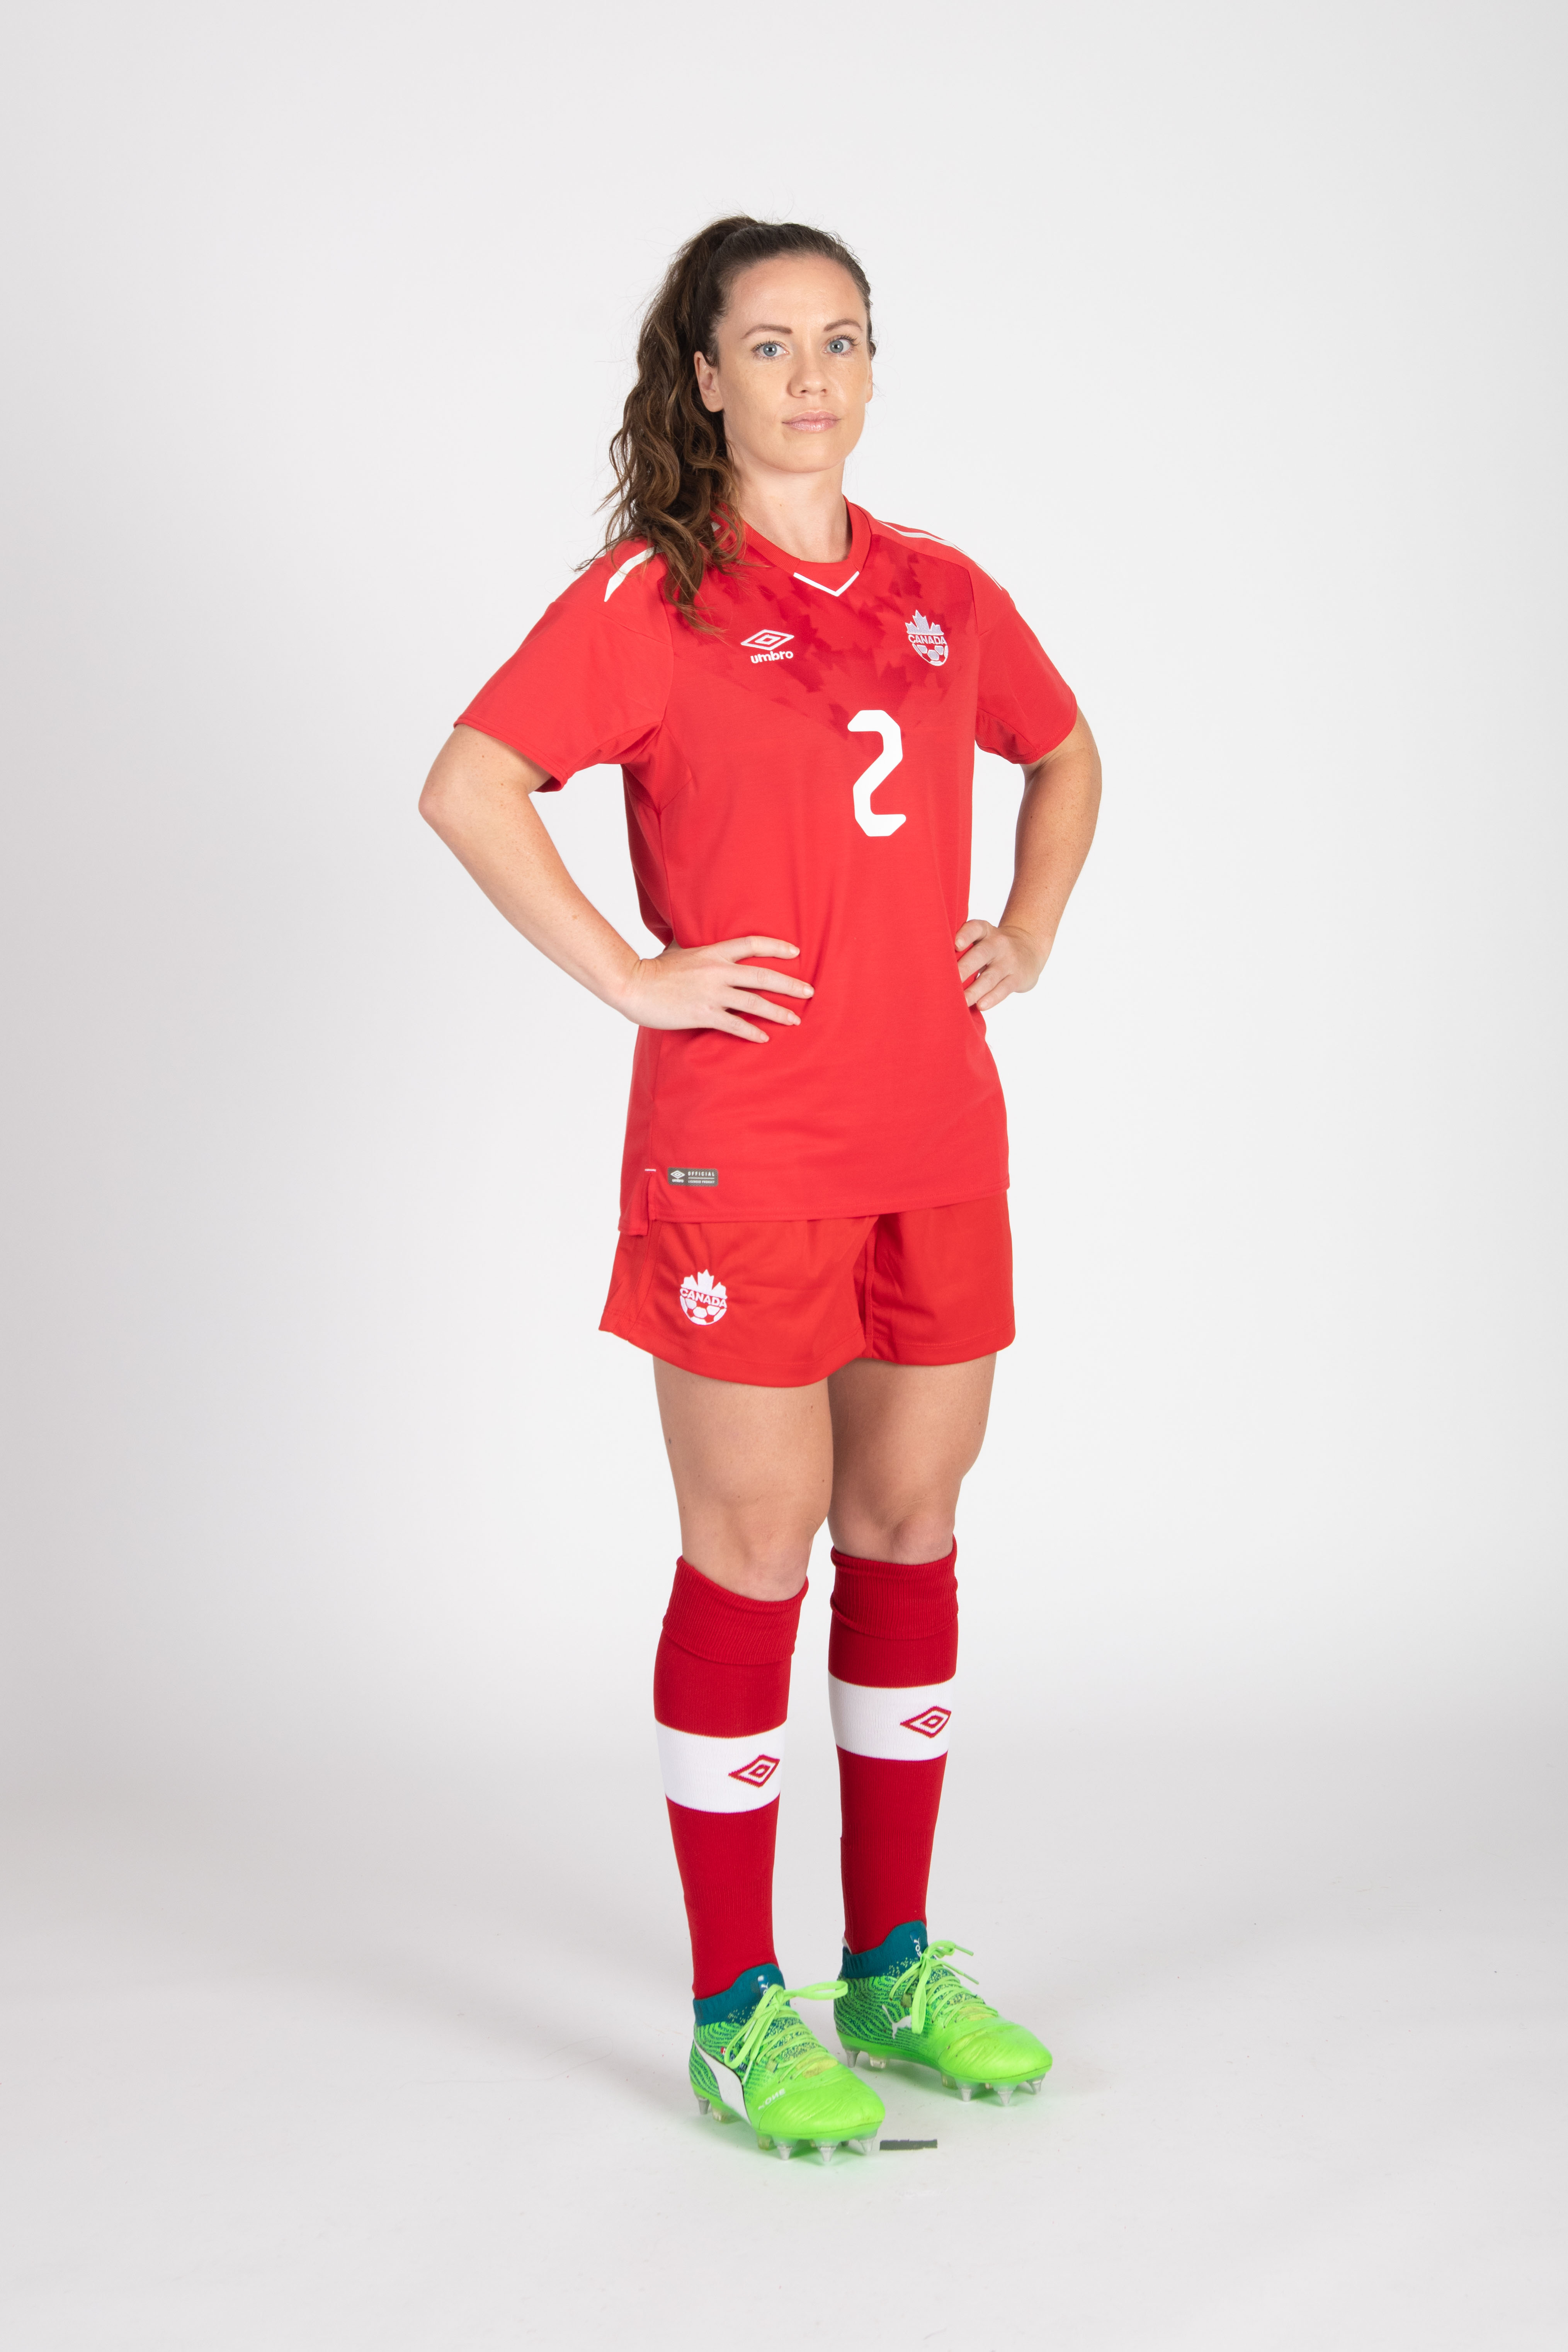 20180604_CANWNT_Chapman_byBazyl15